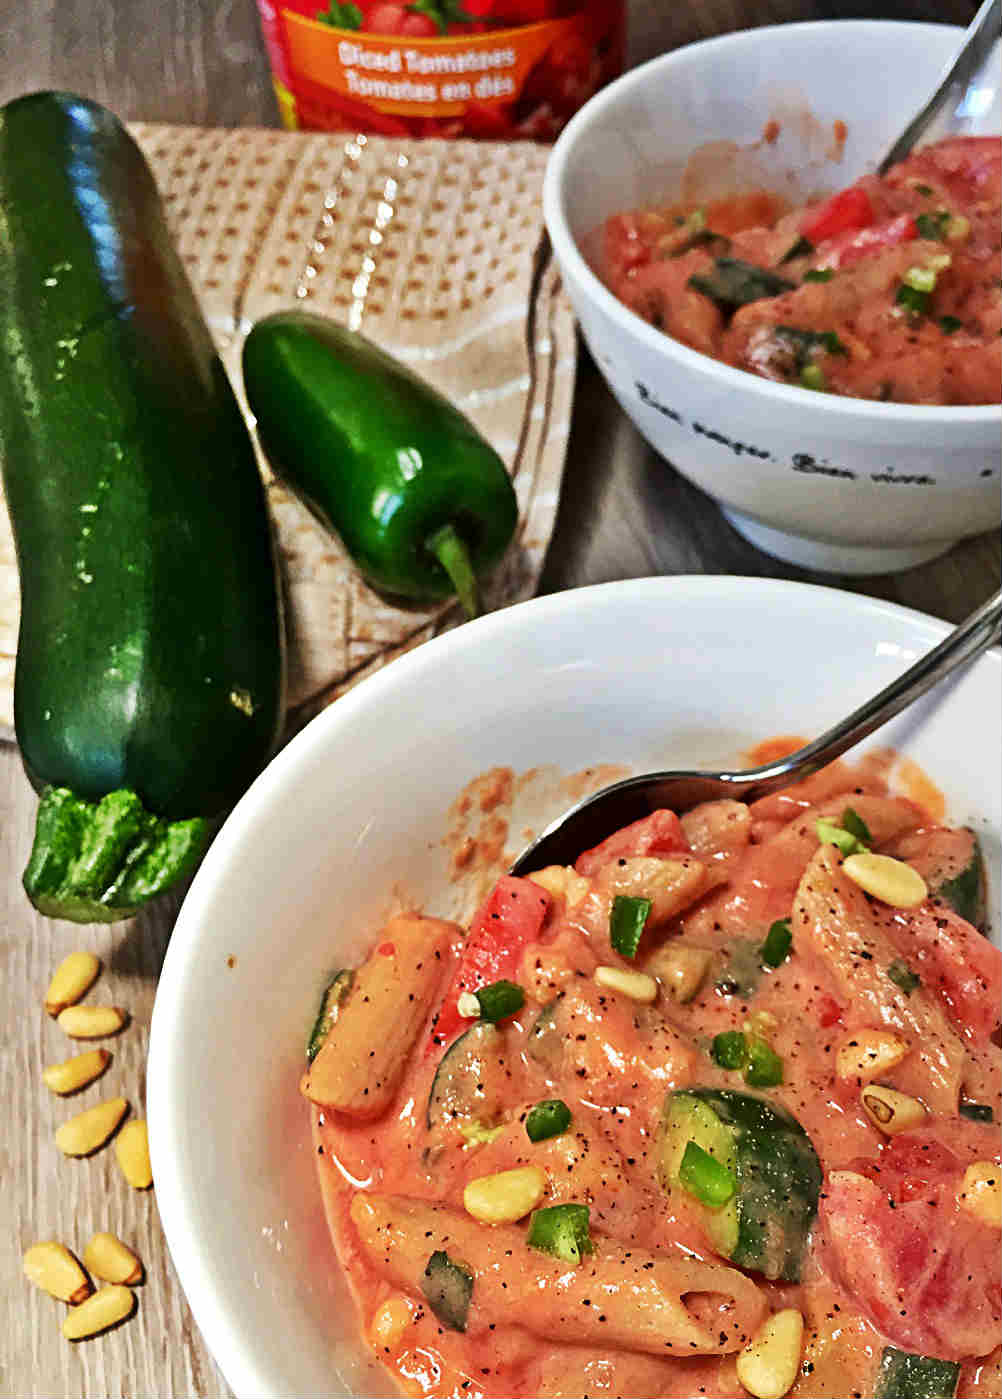 Image of Creamy Tofu Pasta Sauce with Zucchini and Tomatoes